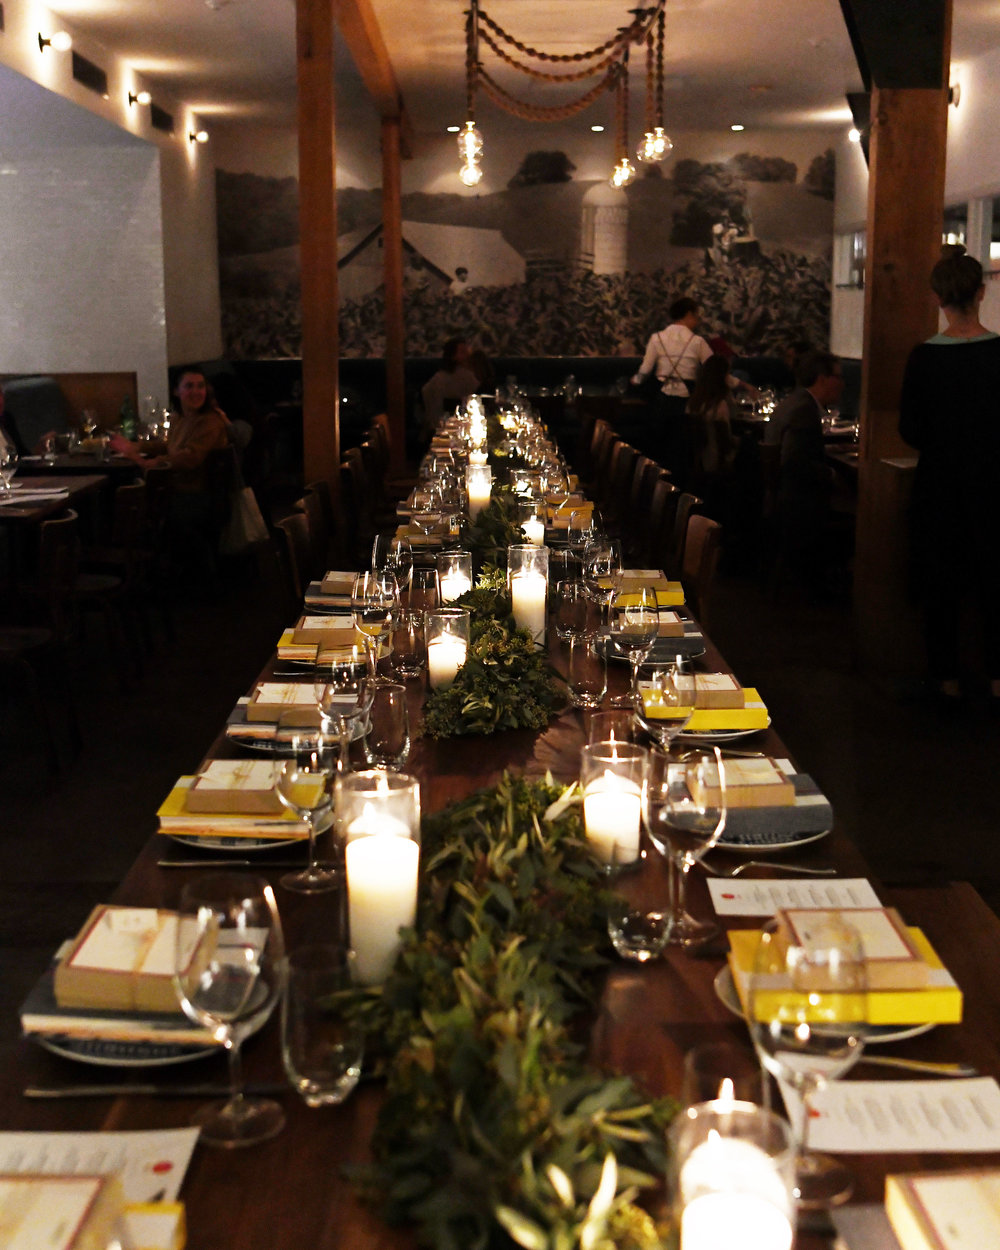 clare v x sugar paper founder's dinner - emma feil photography